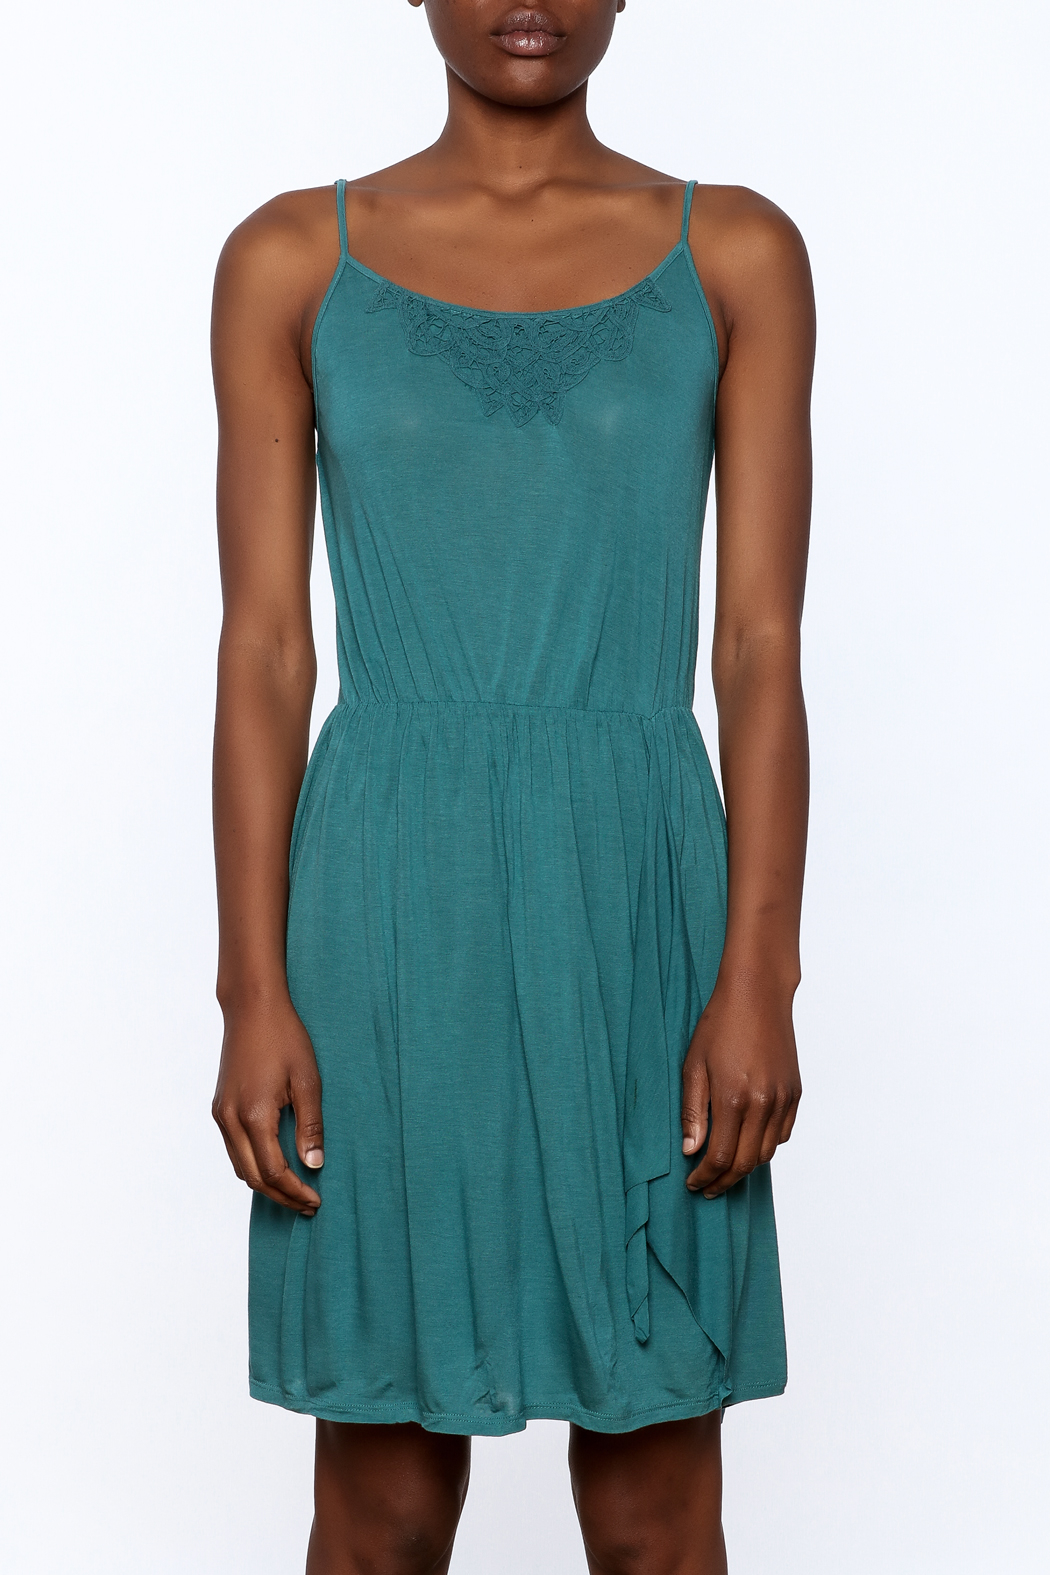 Gentle Fawn Teal Sleeveless Dress - Side Cropped Image